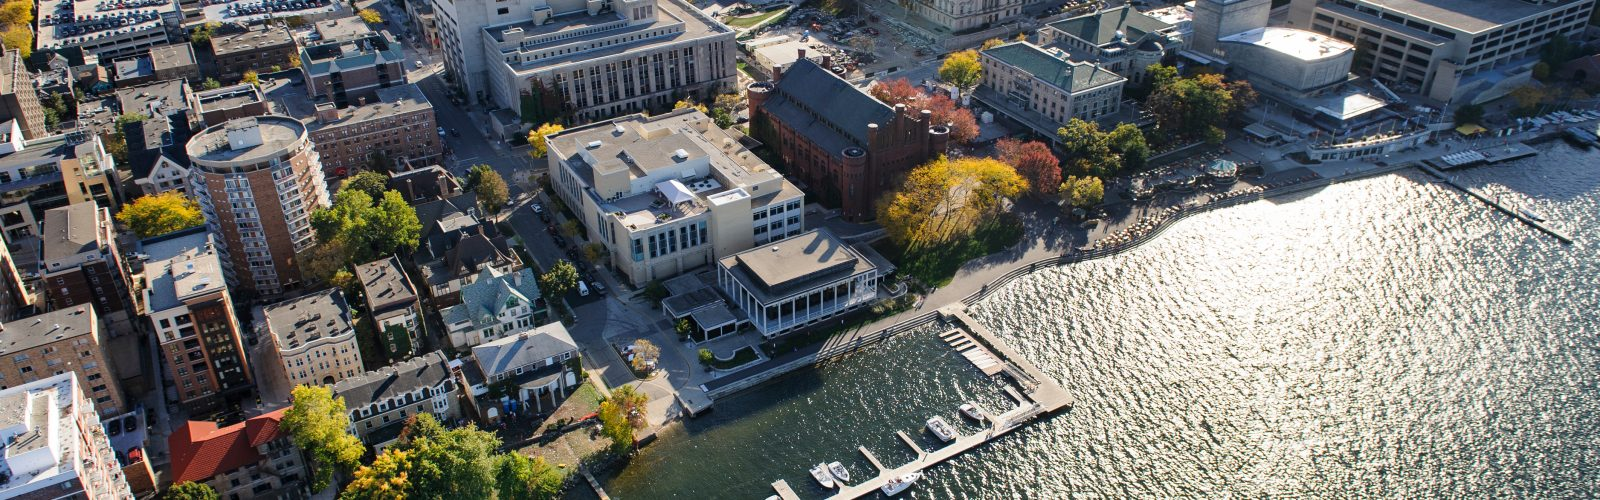 The Lake Mendota shoreline is pictured in an aerial view of the University of Wisconsin-Madison campus during autumn on Oct. 12, 2013. Clockwise from bottom center, major campus facilities include the Goodspeed Family Pier, Below Alumni Center, Pyle Center, Memorial Library, Mosse Humanities Building, construction of the East Campus Mall, Wisconsin State Historical Society, Science Hall, Helen C. White Hall, Memorial Union Terrace and Red Gym (Armory and Gymnasium). The photograph was made from a helicopter looking south. (Photo by Jeff Miller/UW-Madison)